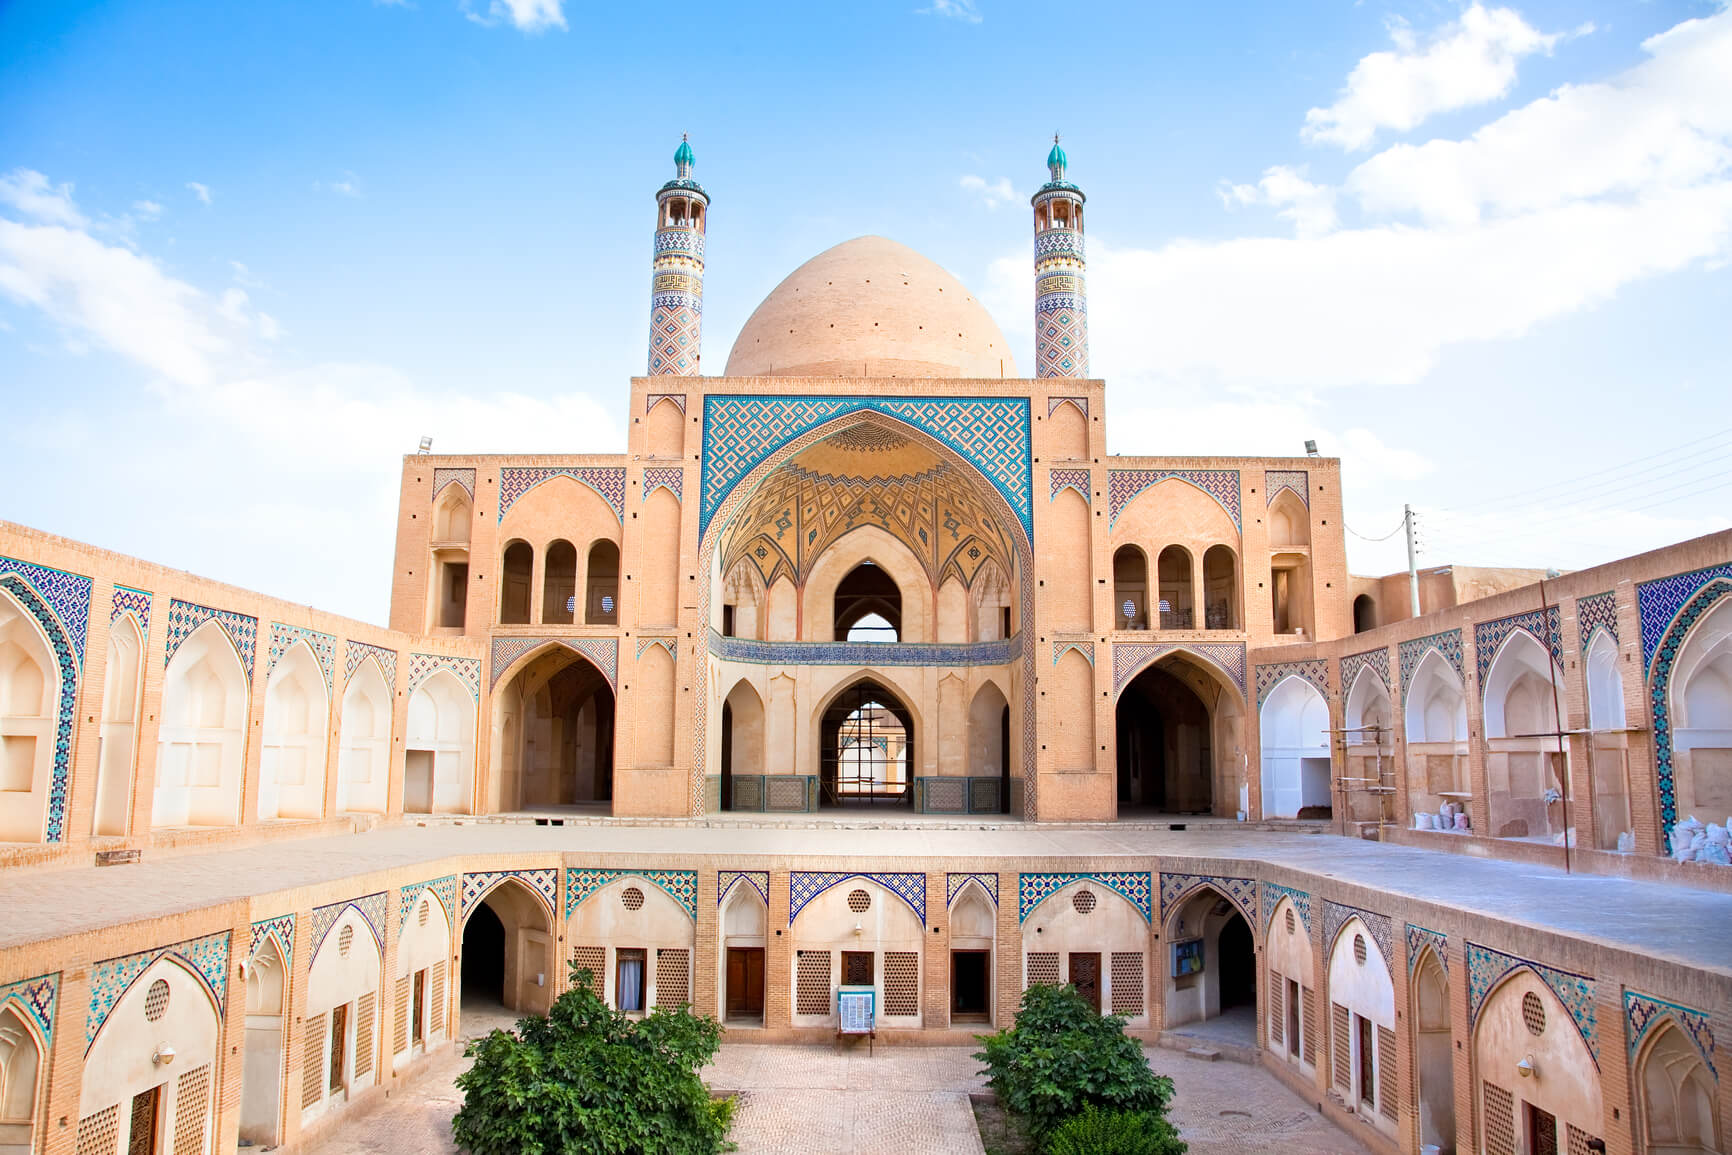 Many European cities to Tehran, Iran from only €135 roundtrip